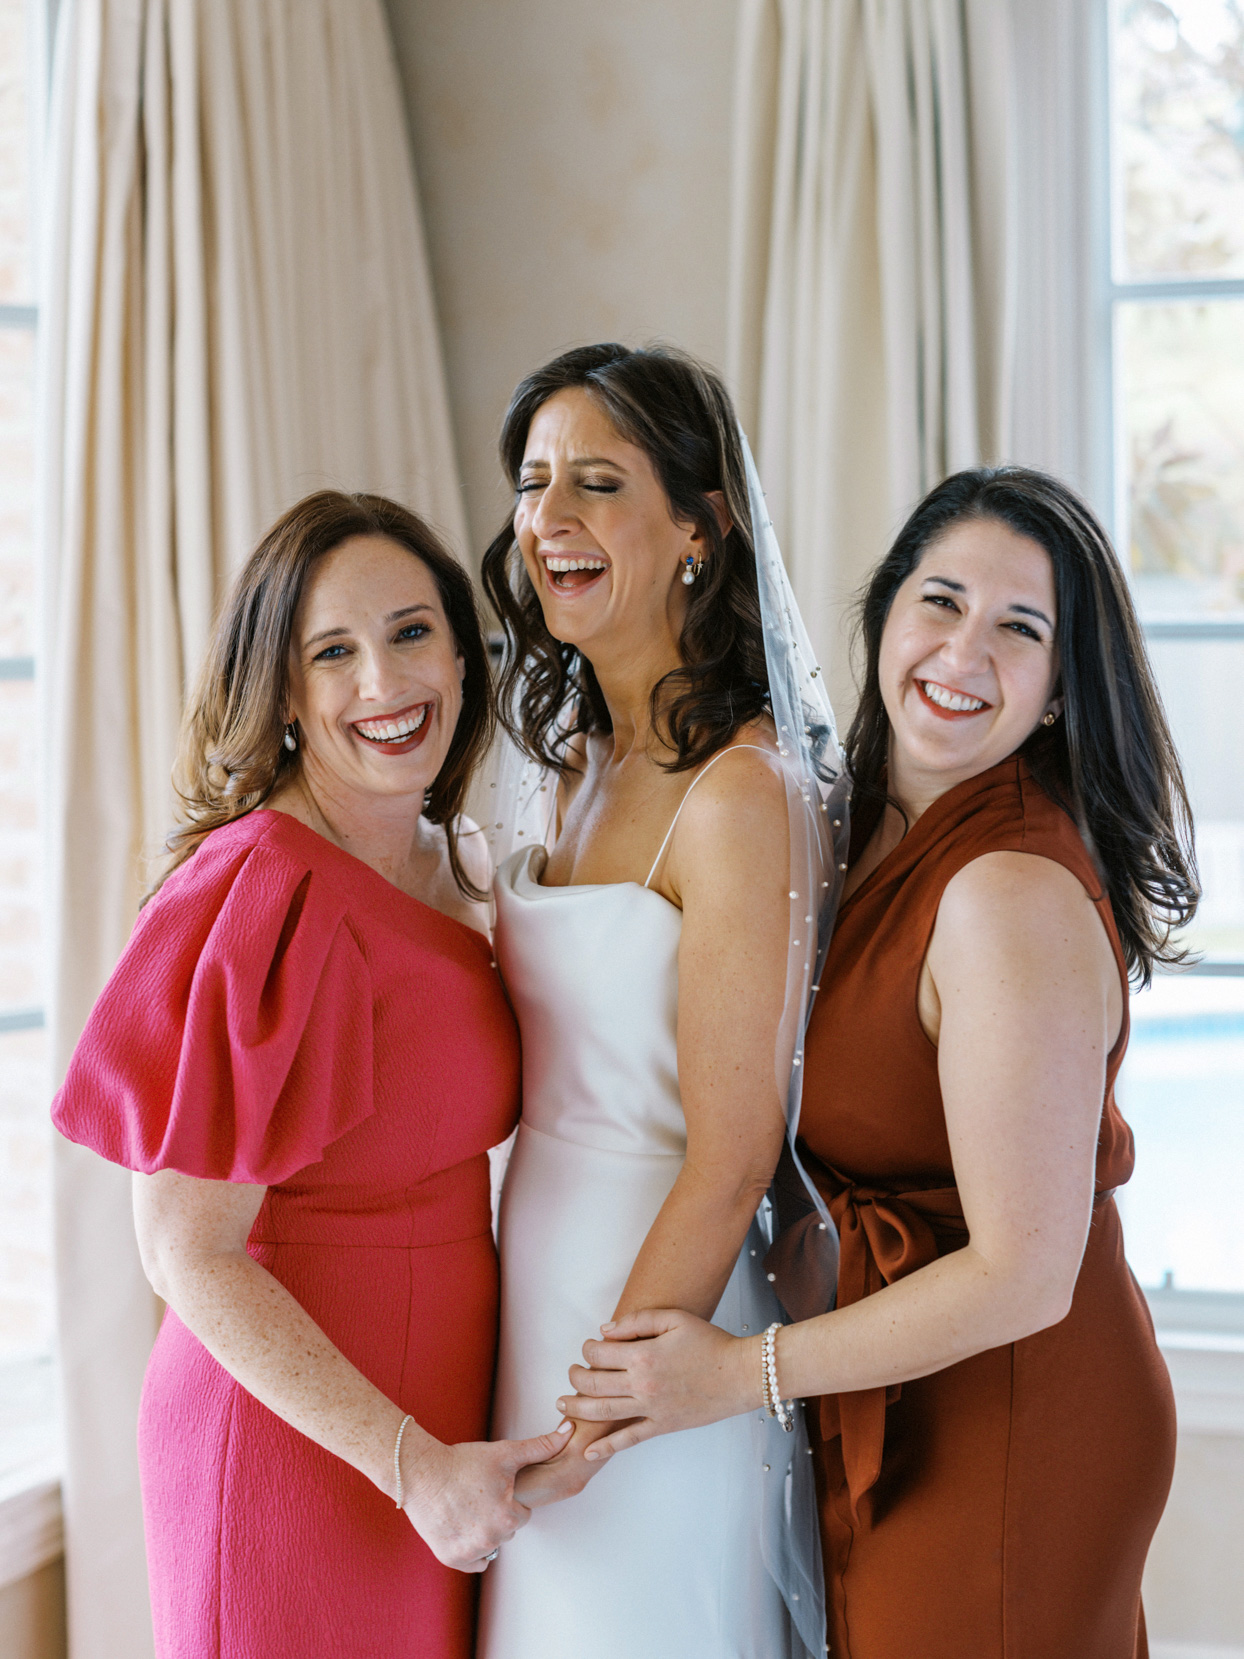 bride laughing and smiling with two bridesmaids